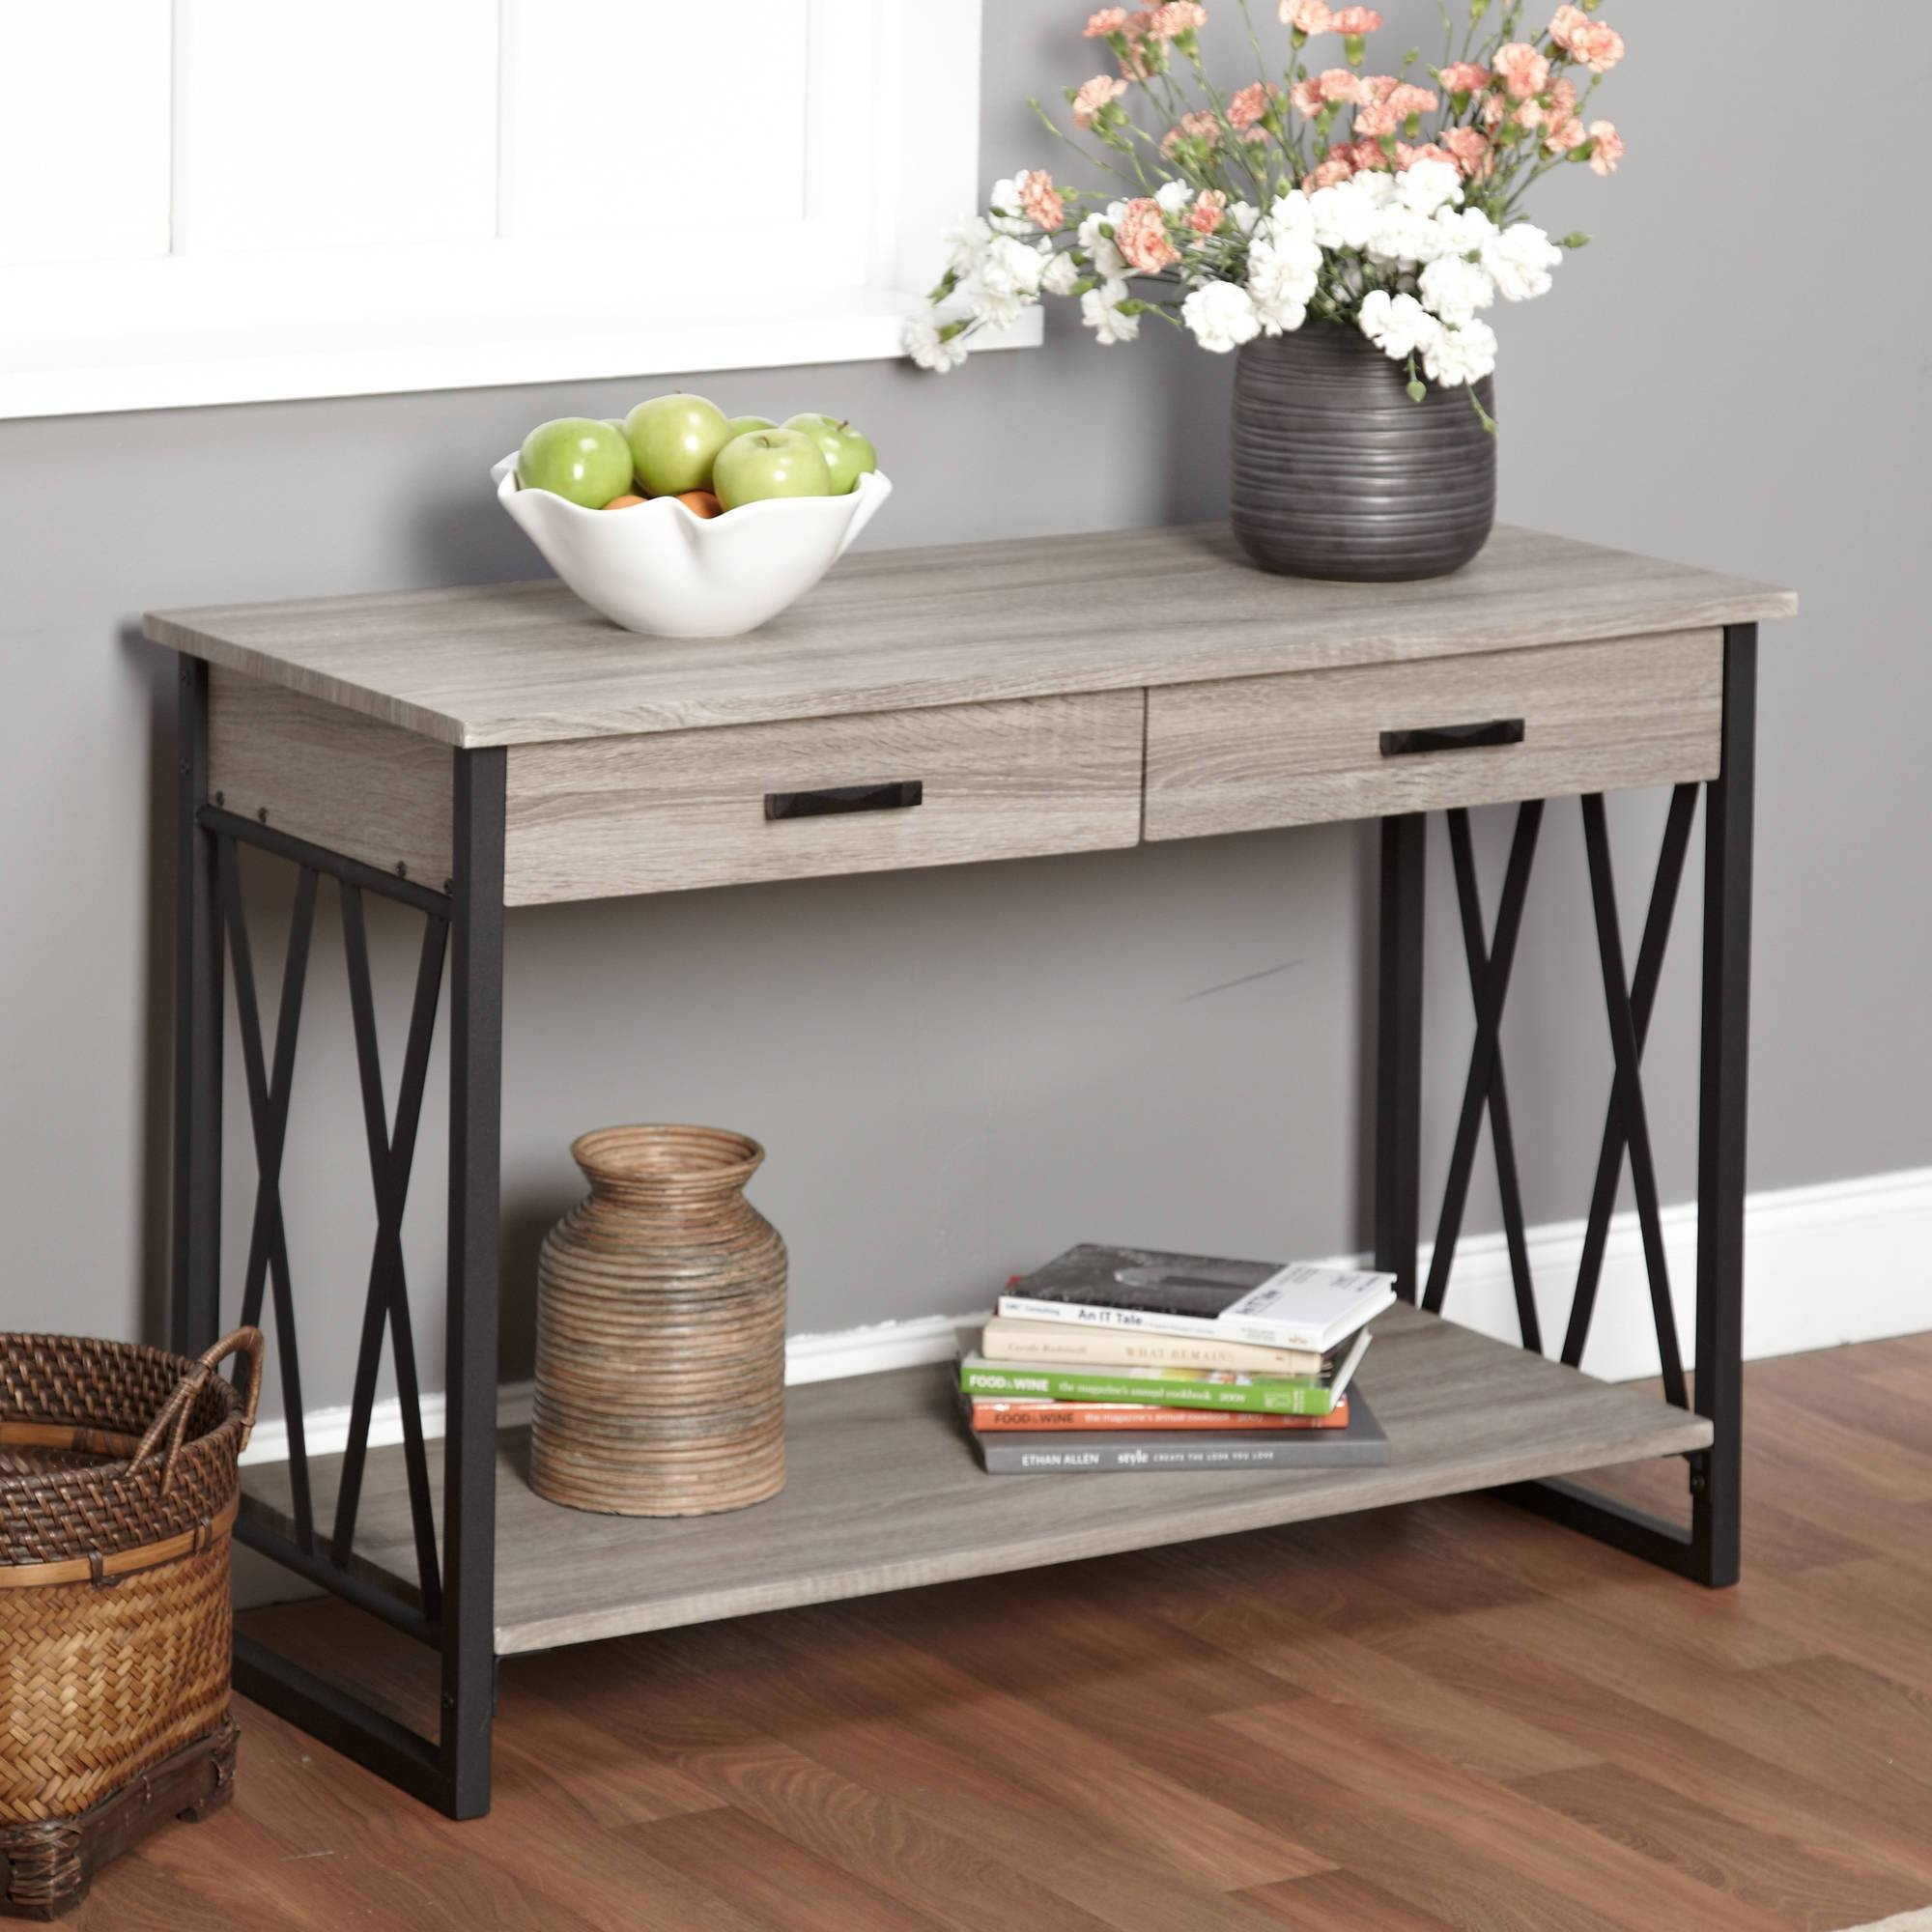 Sofas Center : Narrow Sofa Console Tables Rustic And within Sofas With Consoles (Image 17 of 30)